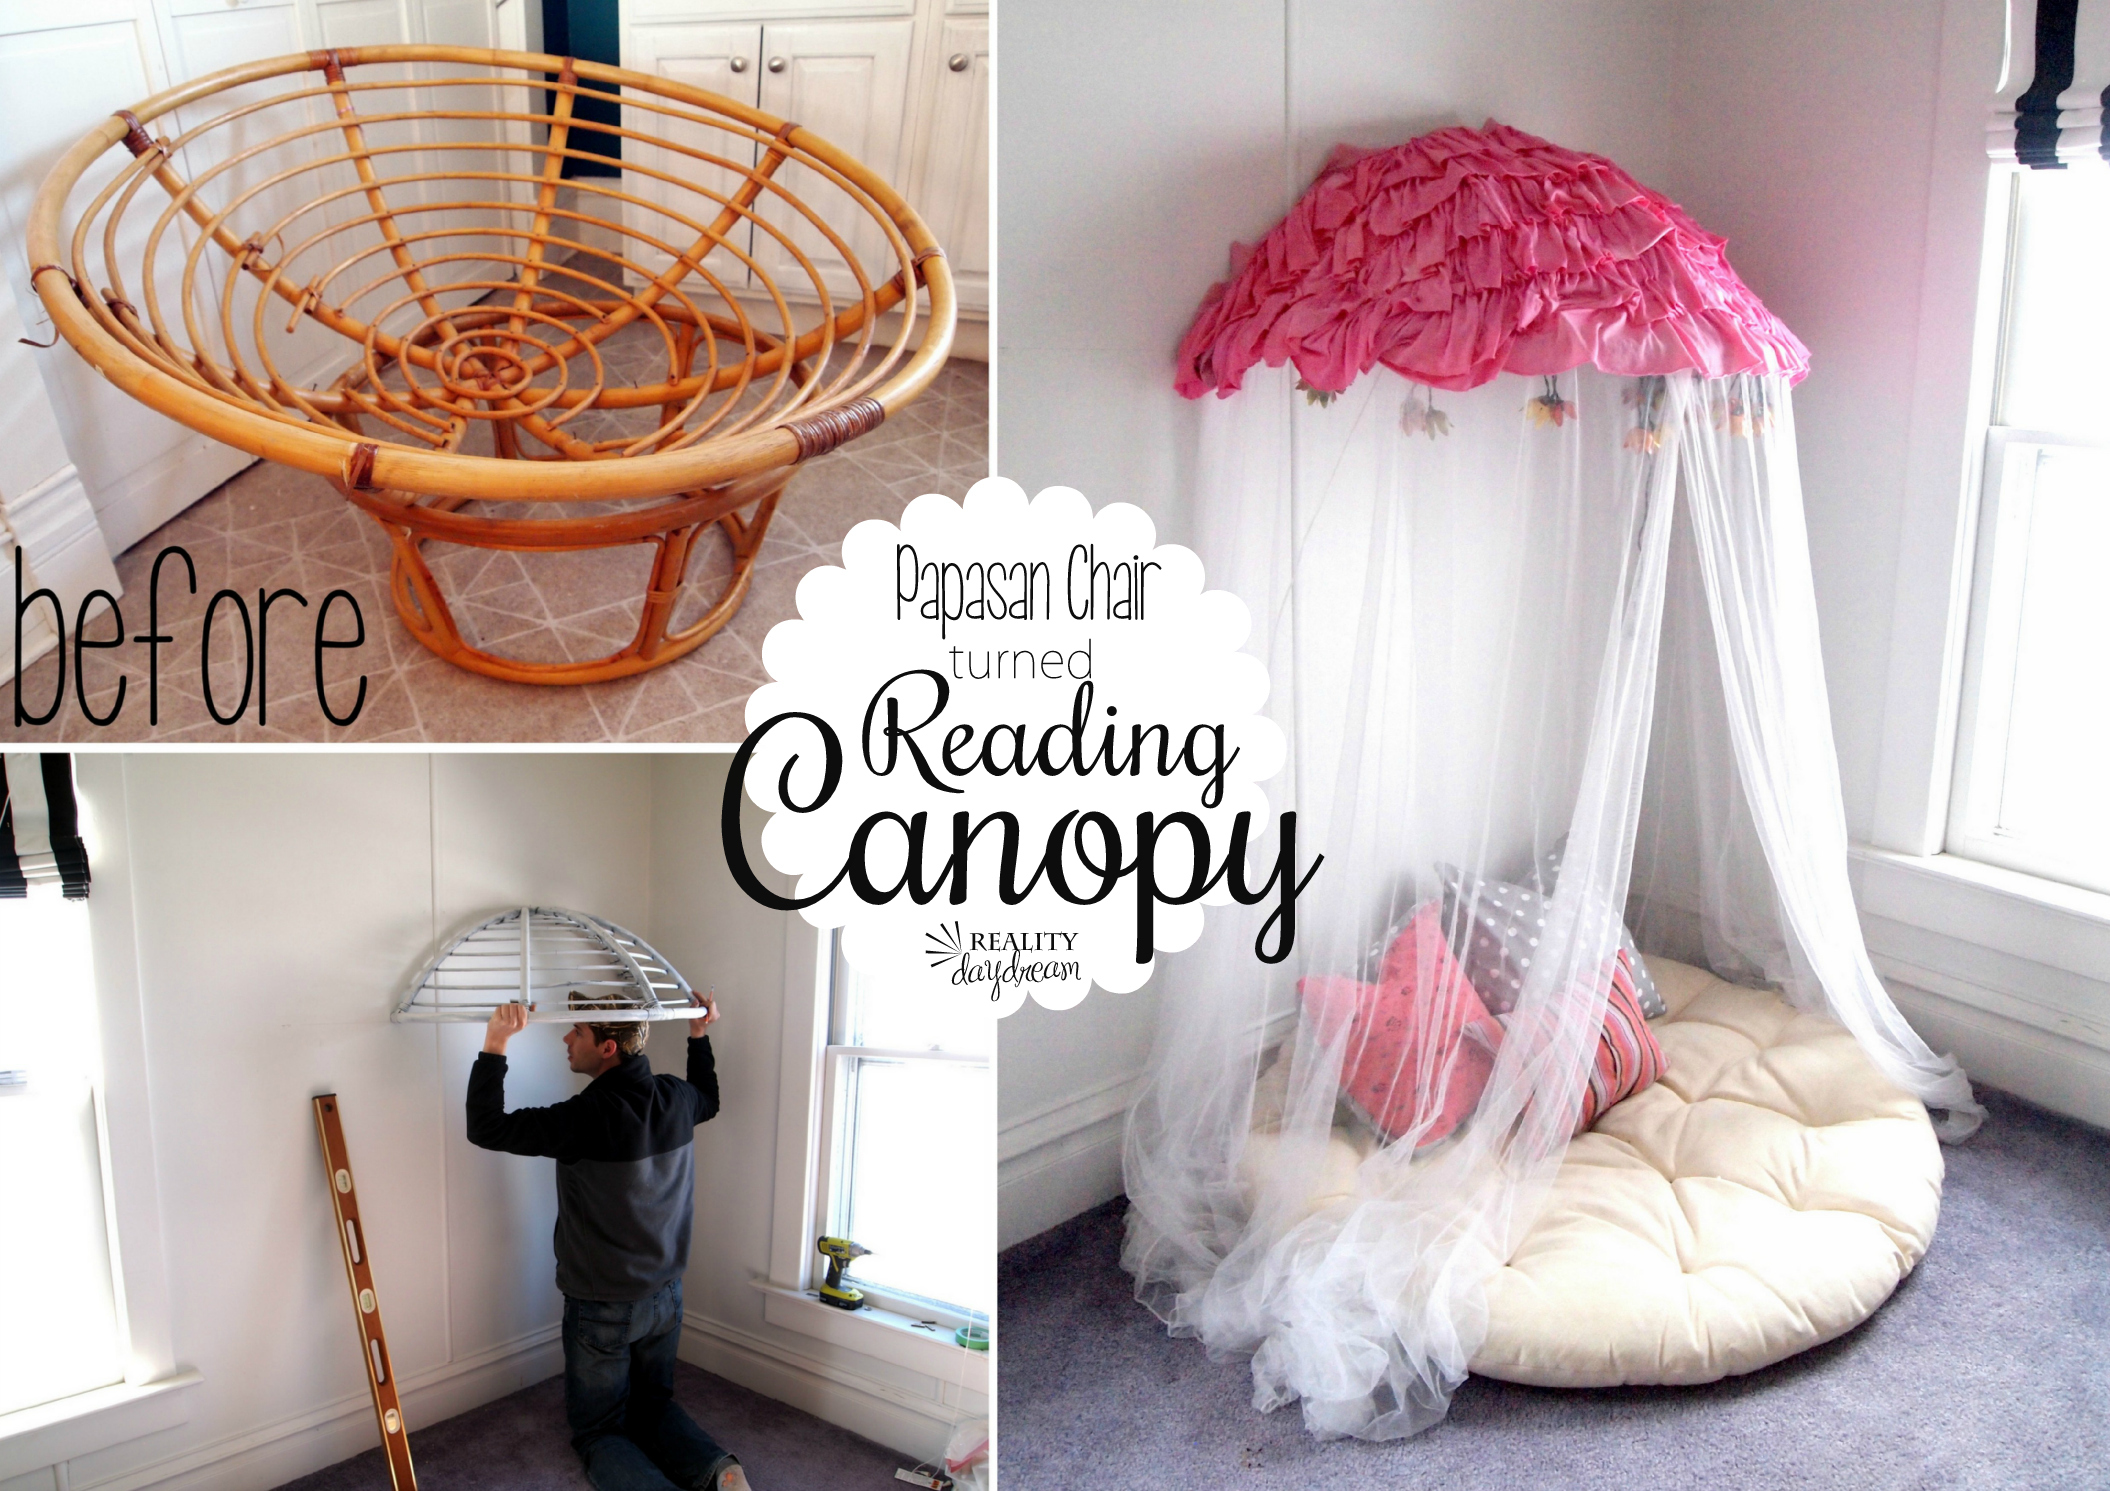 Chairs For Reading Corner Turn Your Old Papasan Into A Canopy Reading Nook Reality Day Dream